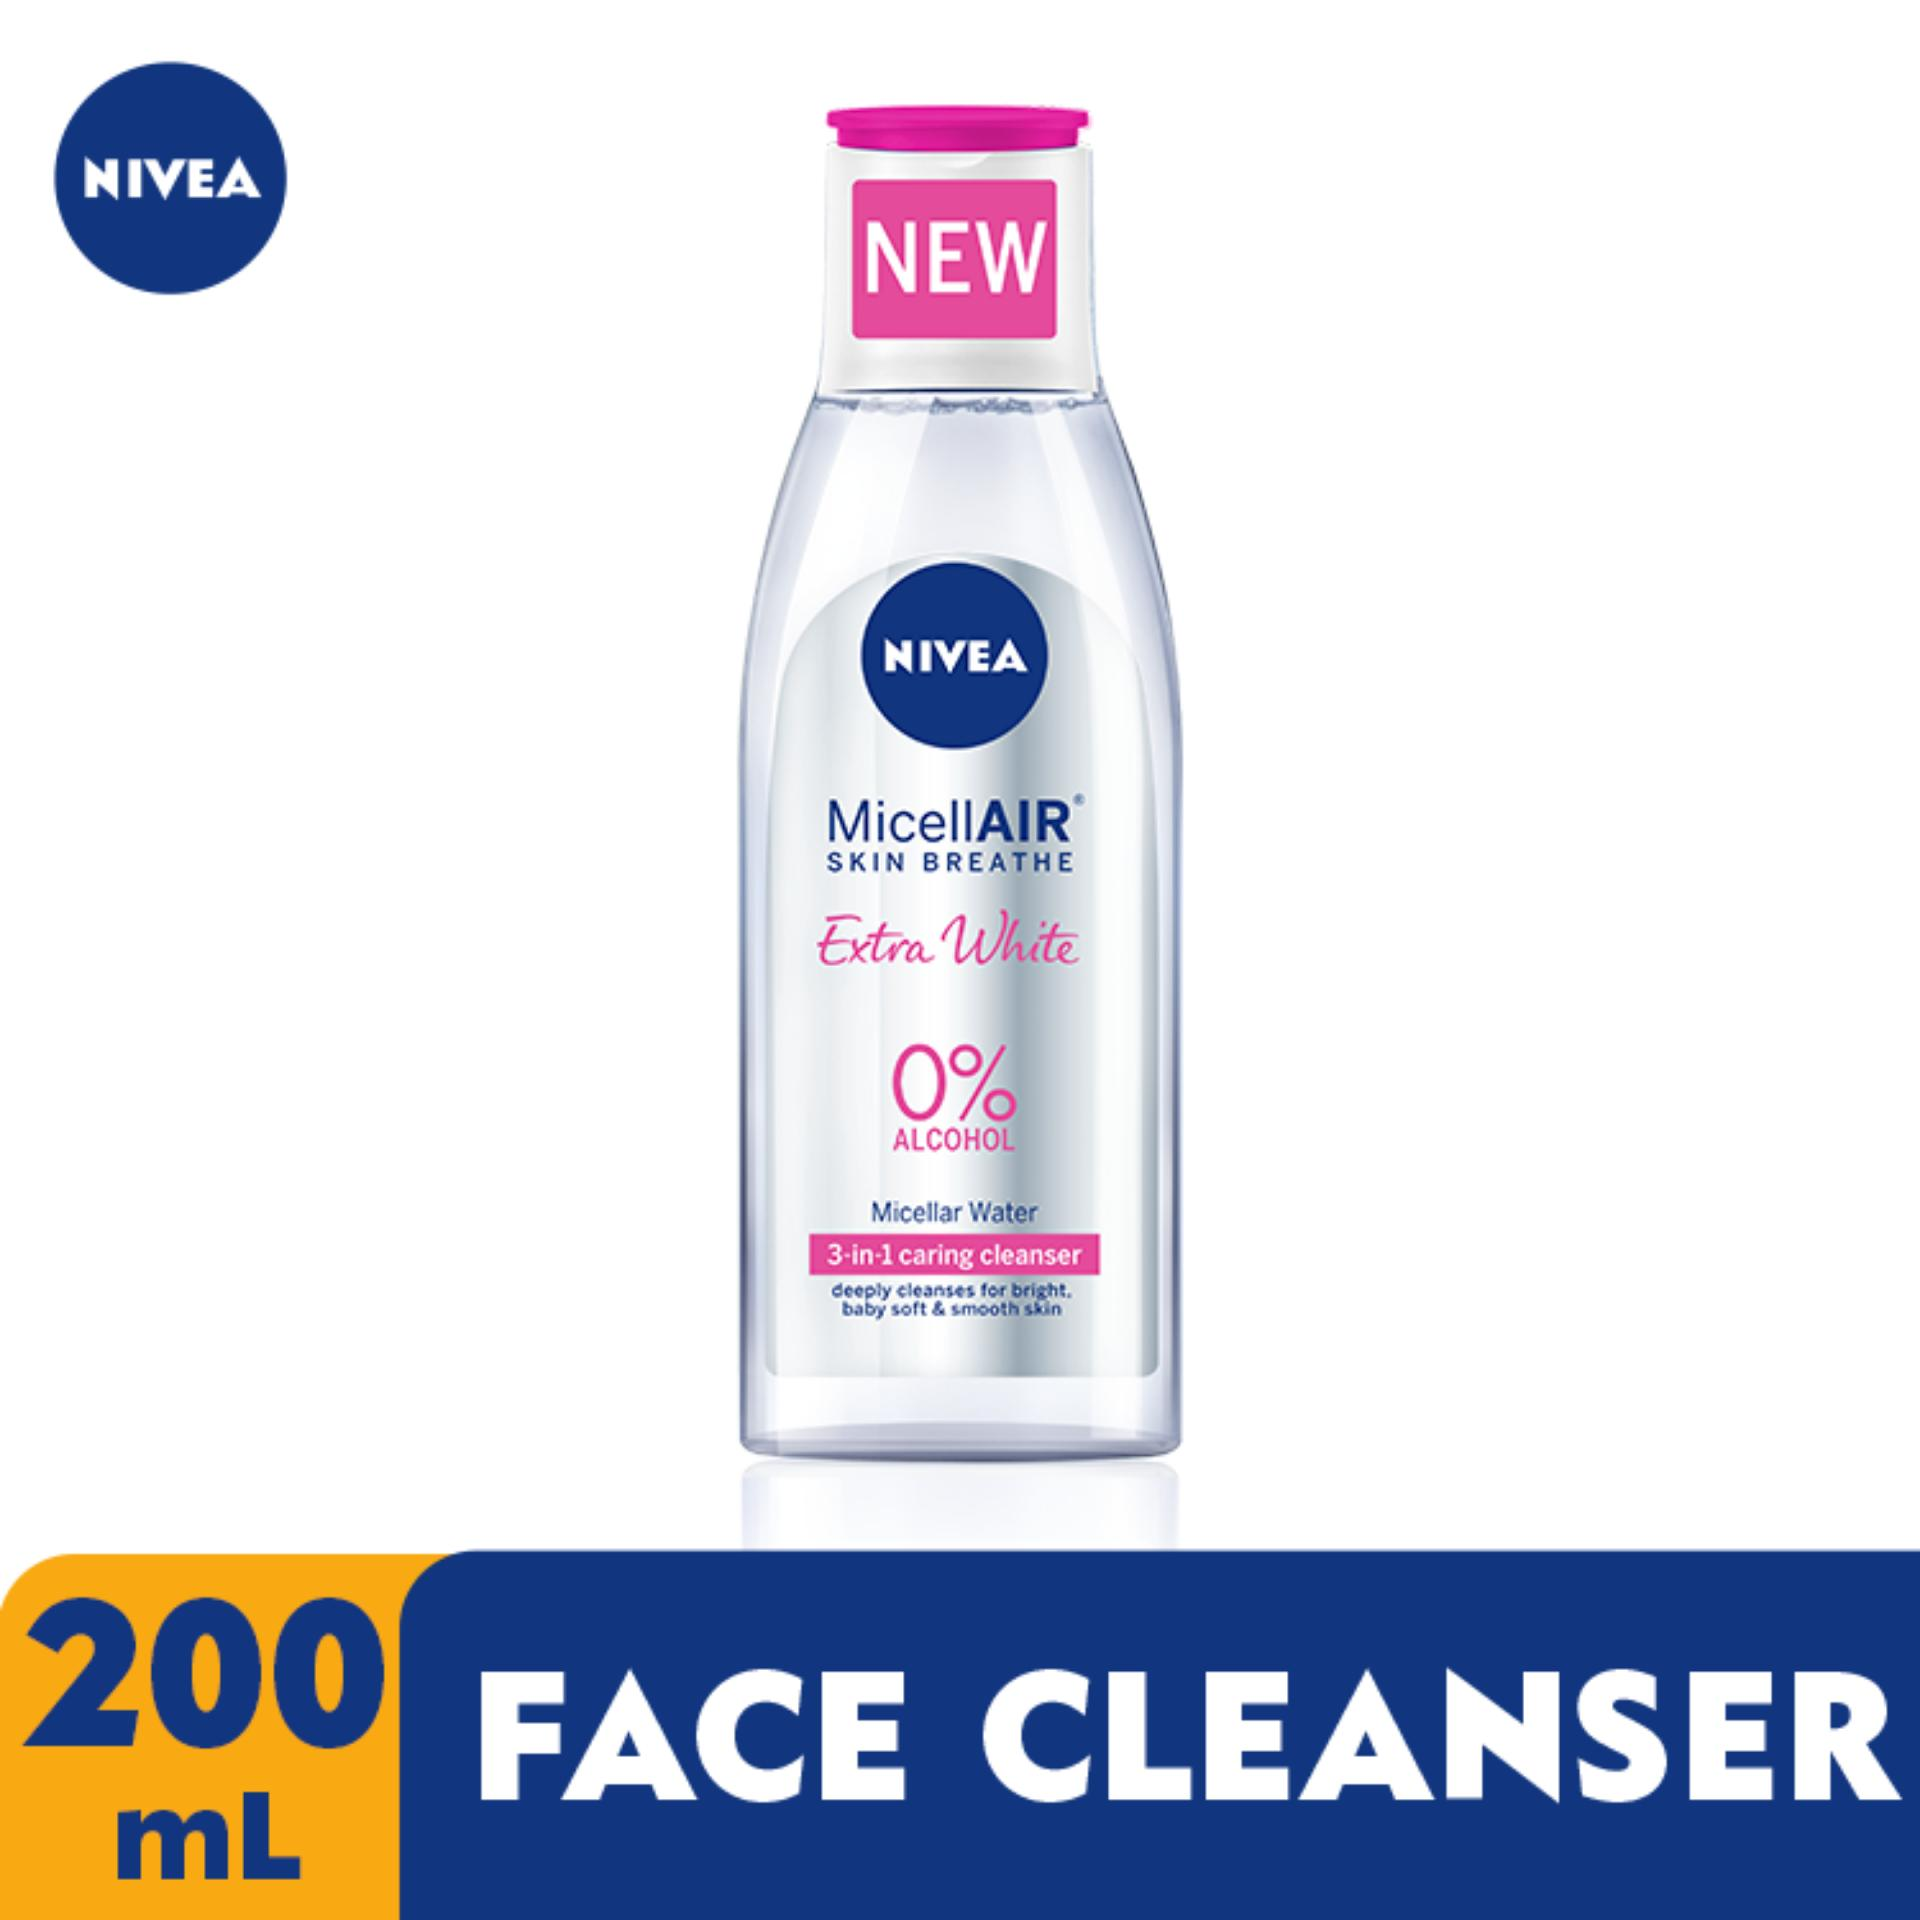 Nivea Philippines Price List Lotion Deodorant Baby Vaseline Healthy White Perfect 10 200ml Twin Pack Face Extra Micellair Water